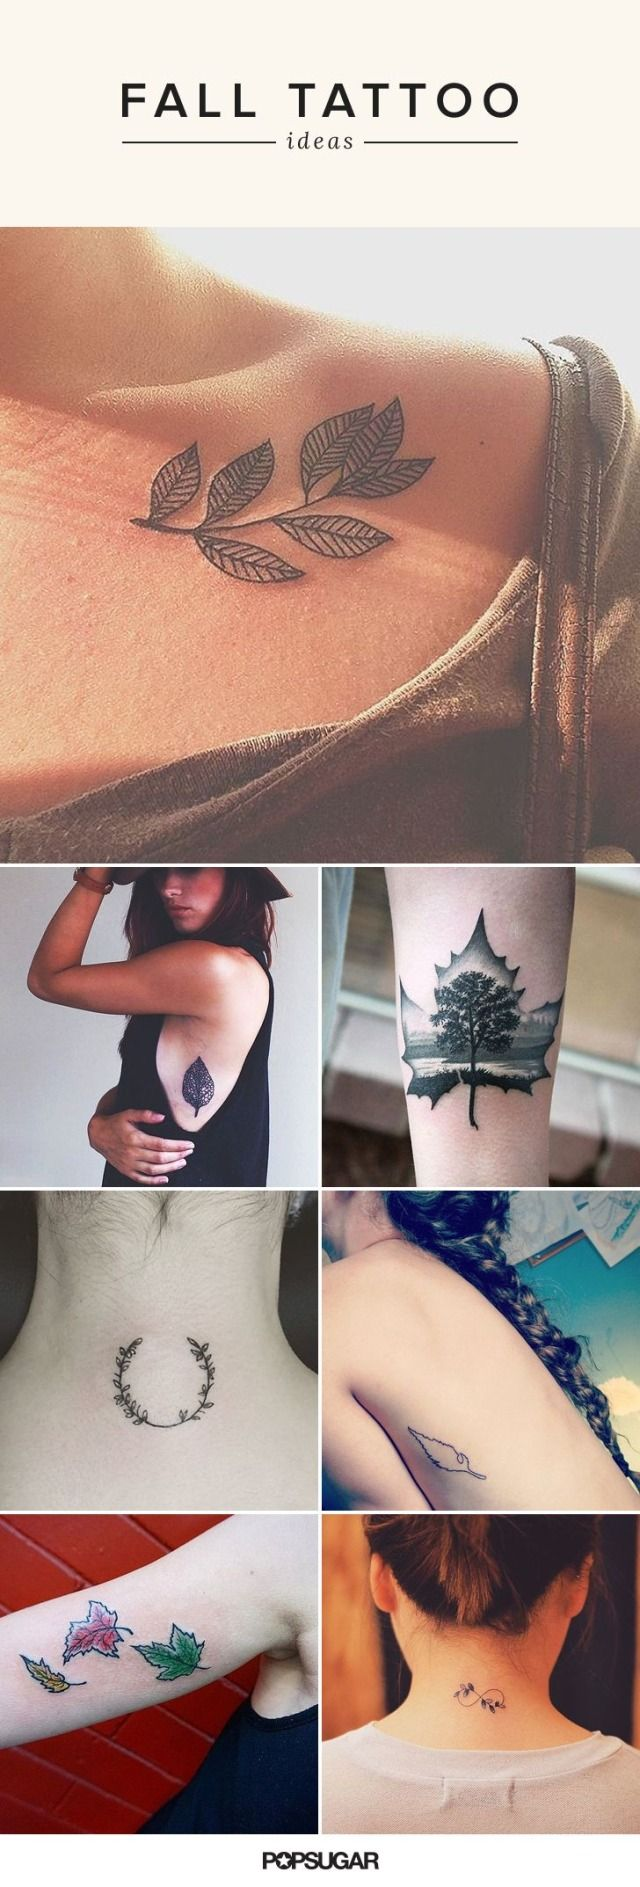 Fall is in full force, and we're going to let you in on a little secret: we don't hate it. We get to unpack our oversize sweaters, put butternut squash in everything, and (of course!) drink pumpkin spice lattes. Judging by these autumnal tattoos, we're not the only ones who adore it.